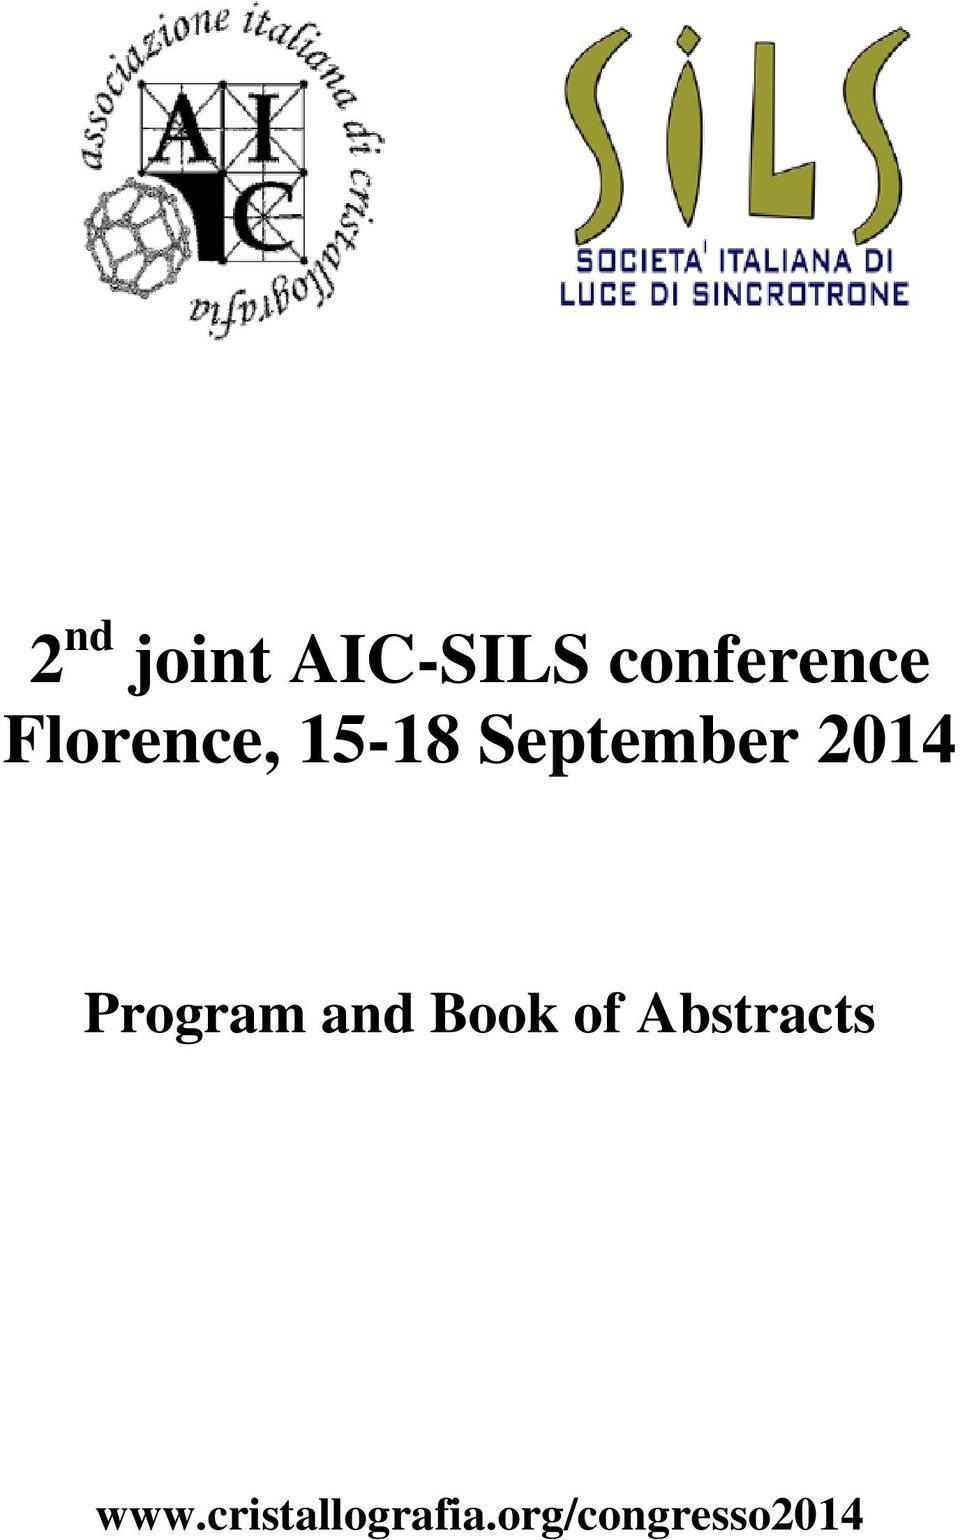 Program and Book of Abstracts